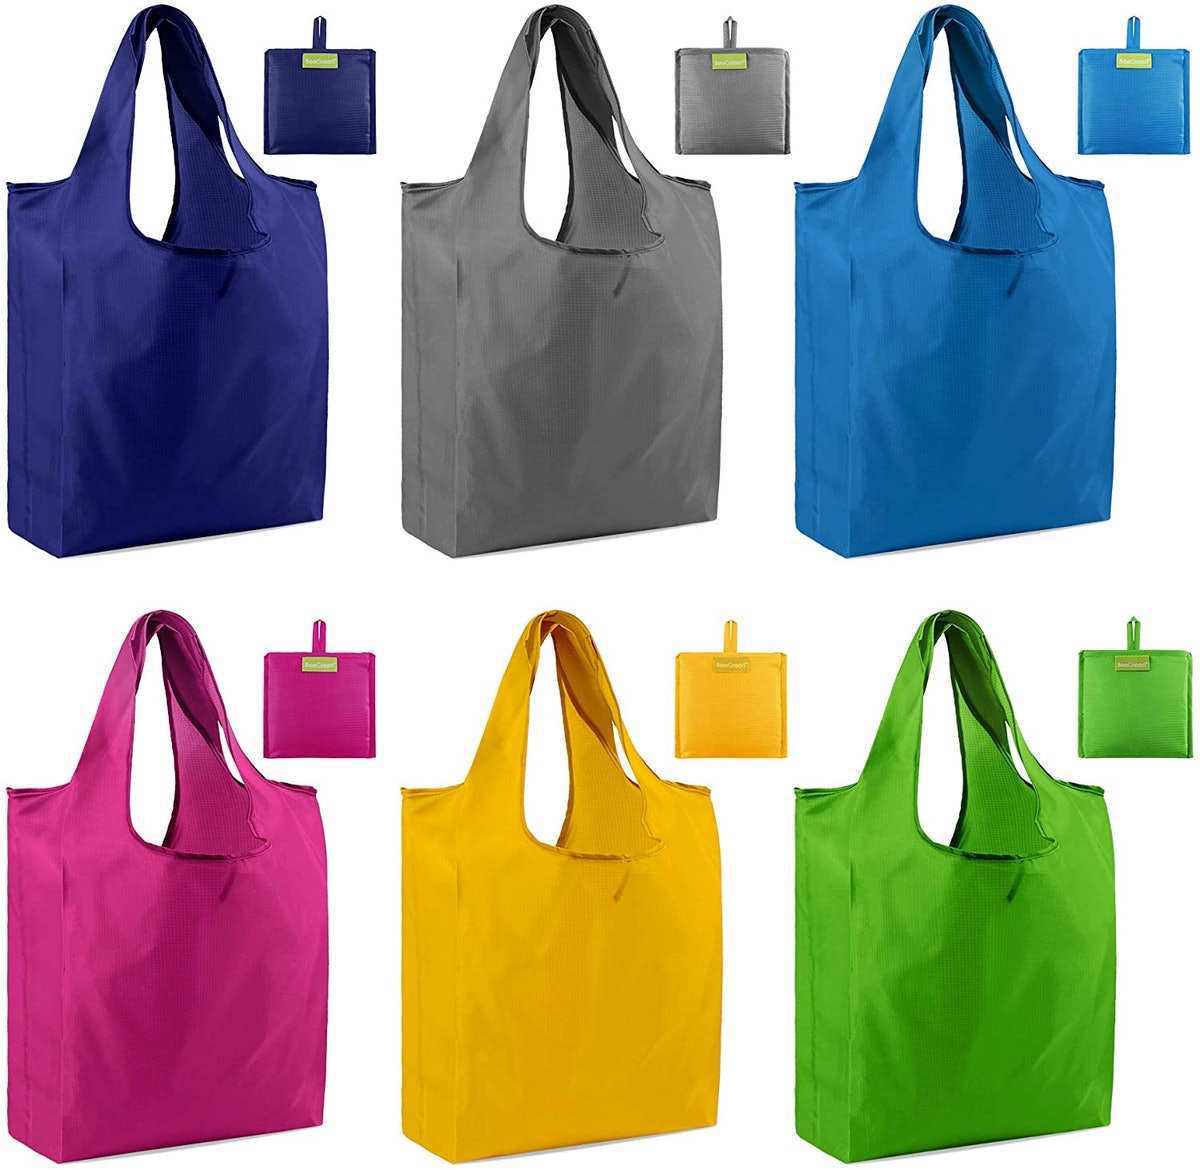 The BeeGreen Reusable Tote Bags